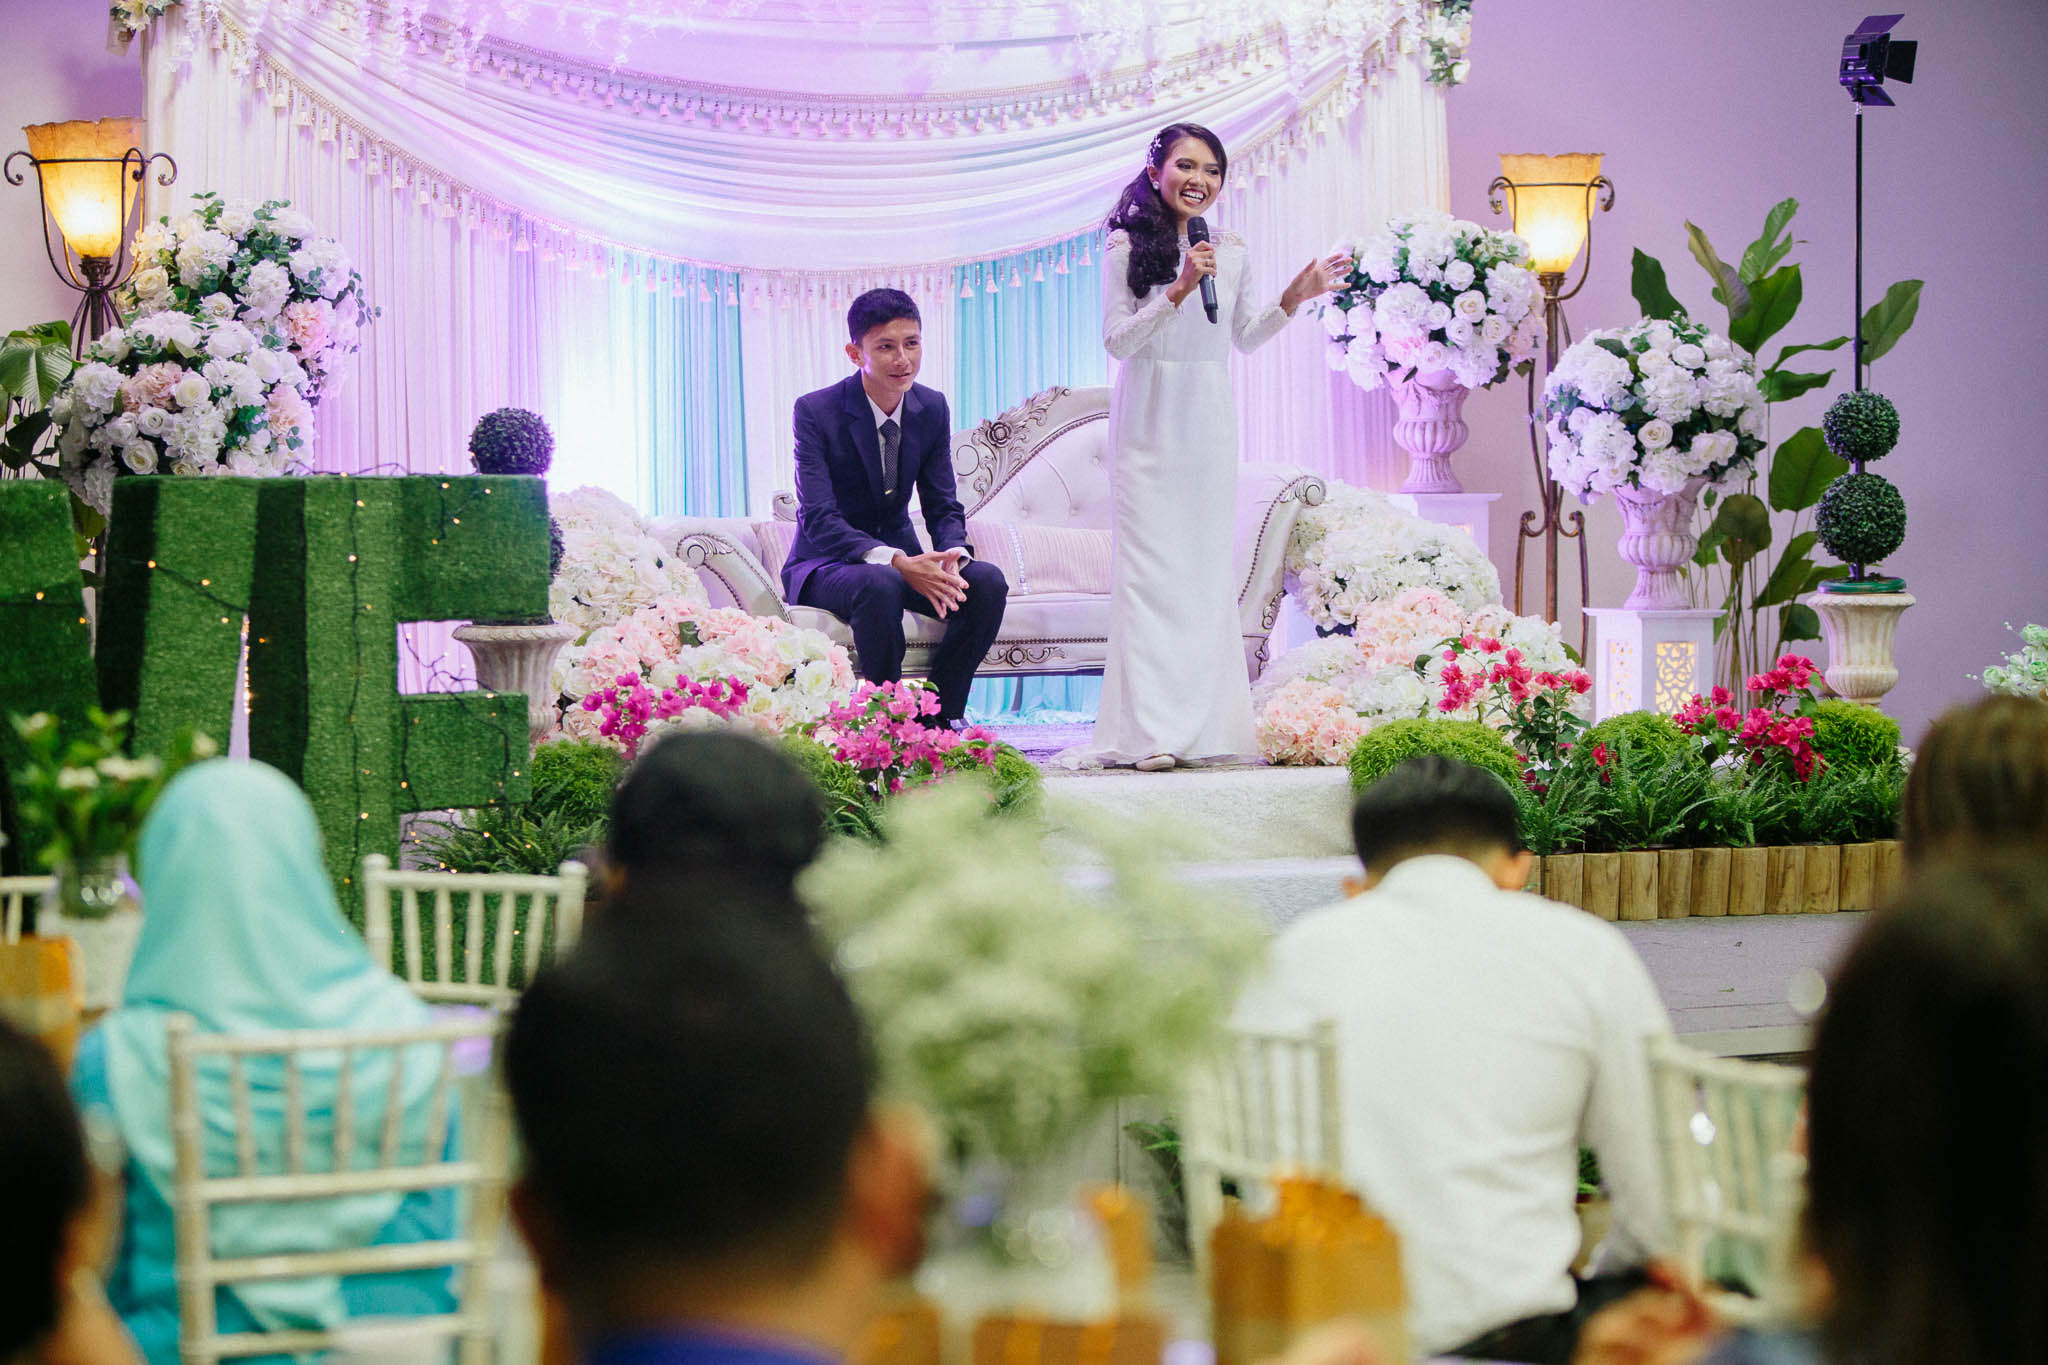 singapore-wedding-photographer-wedding-halimah-muhsin-067.jpg